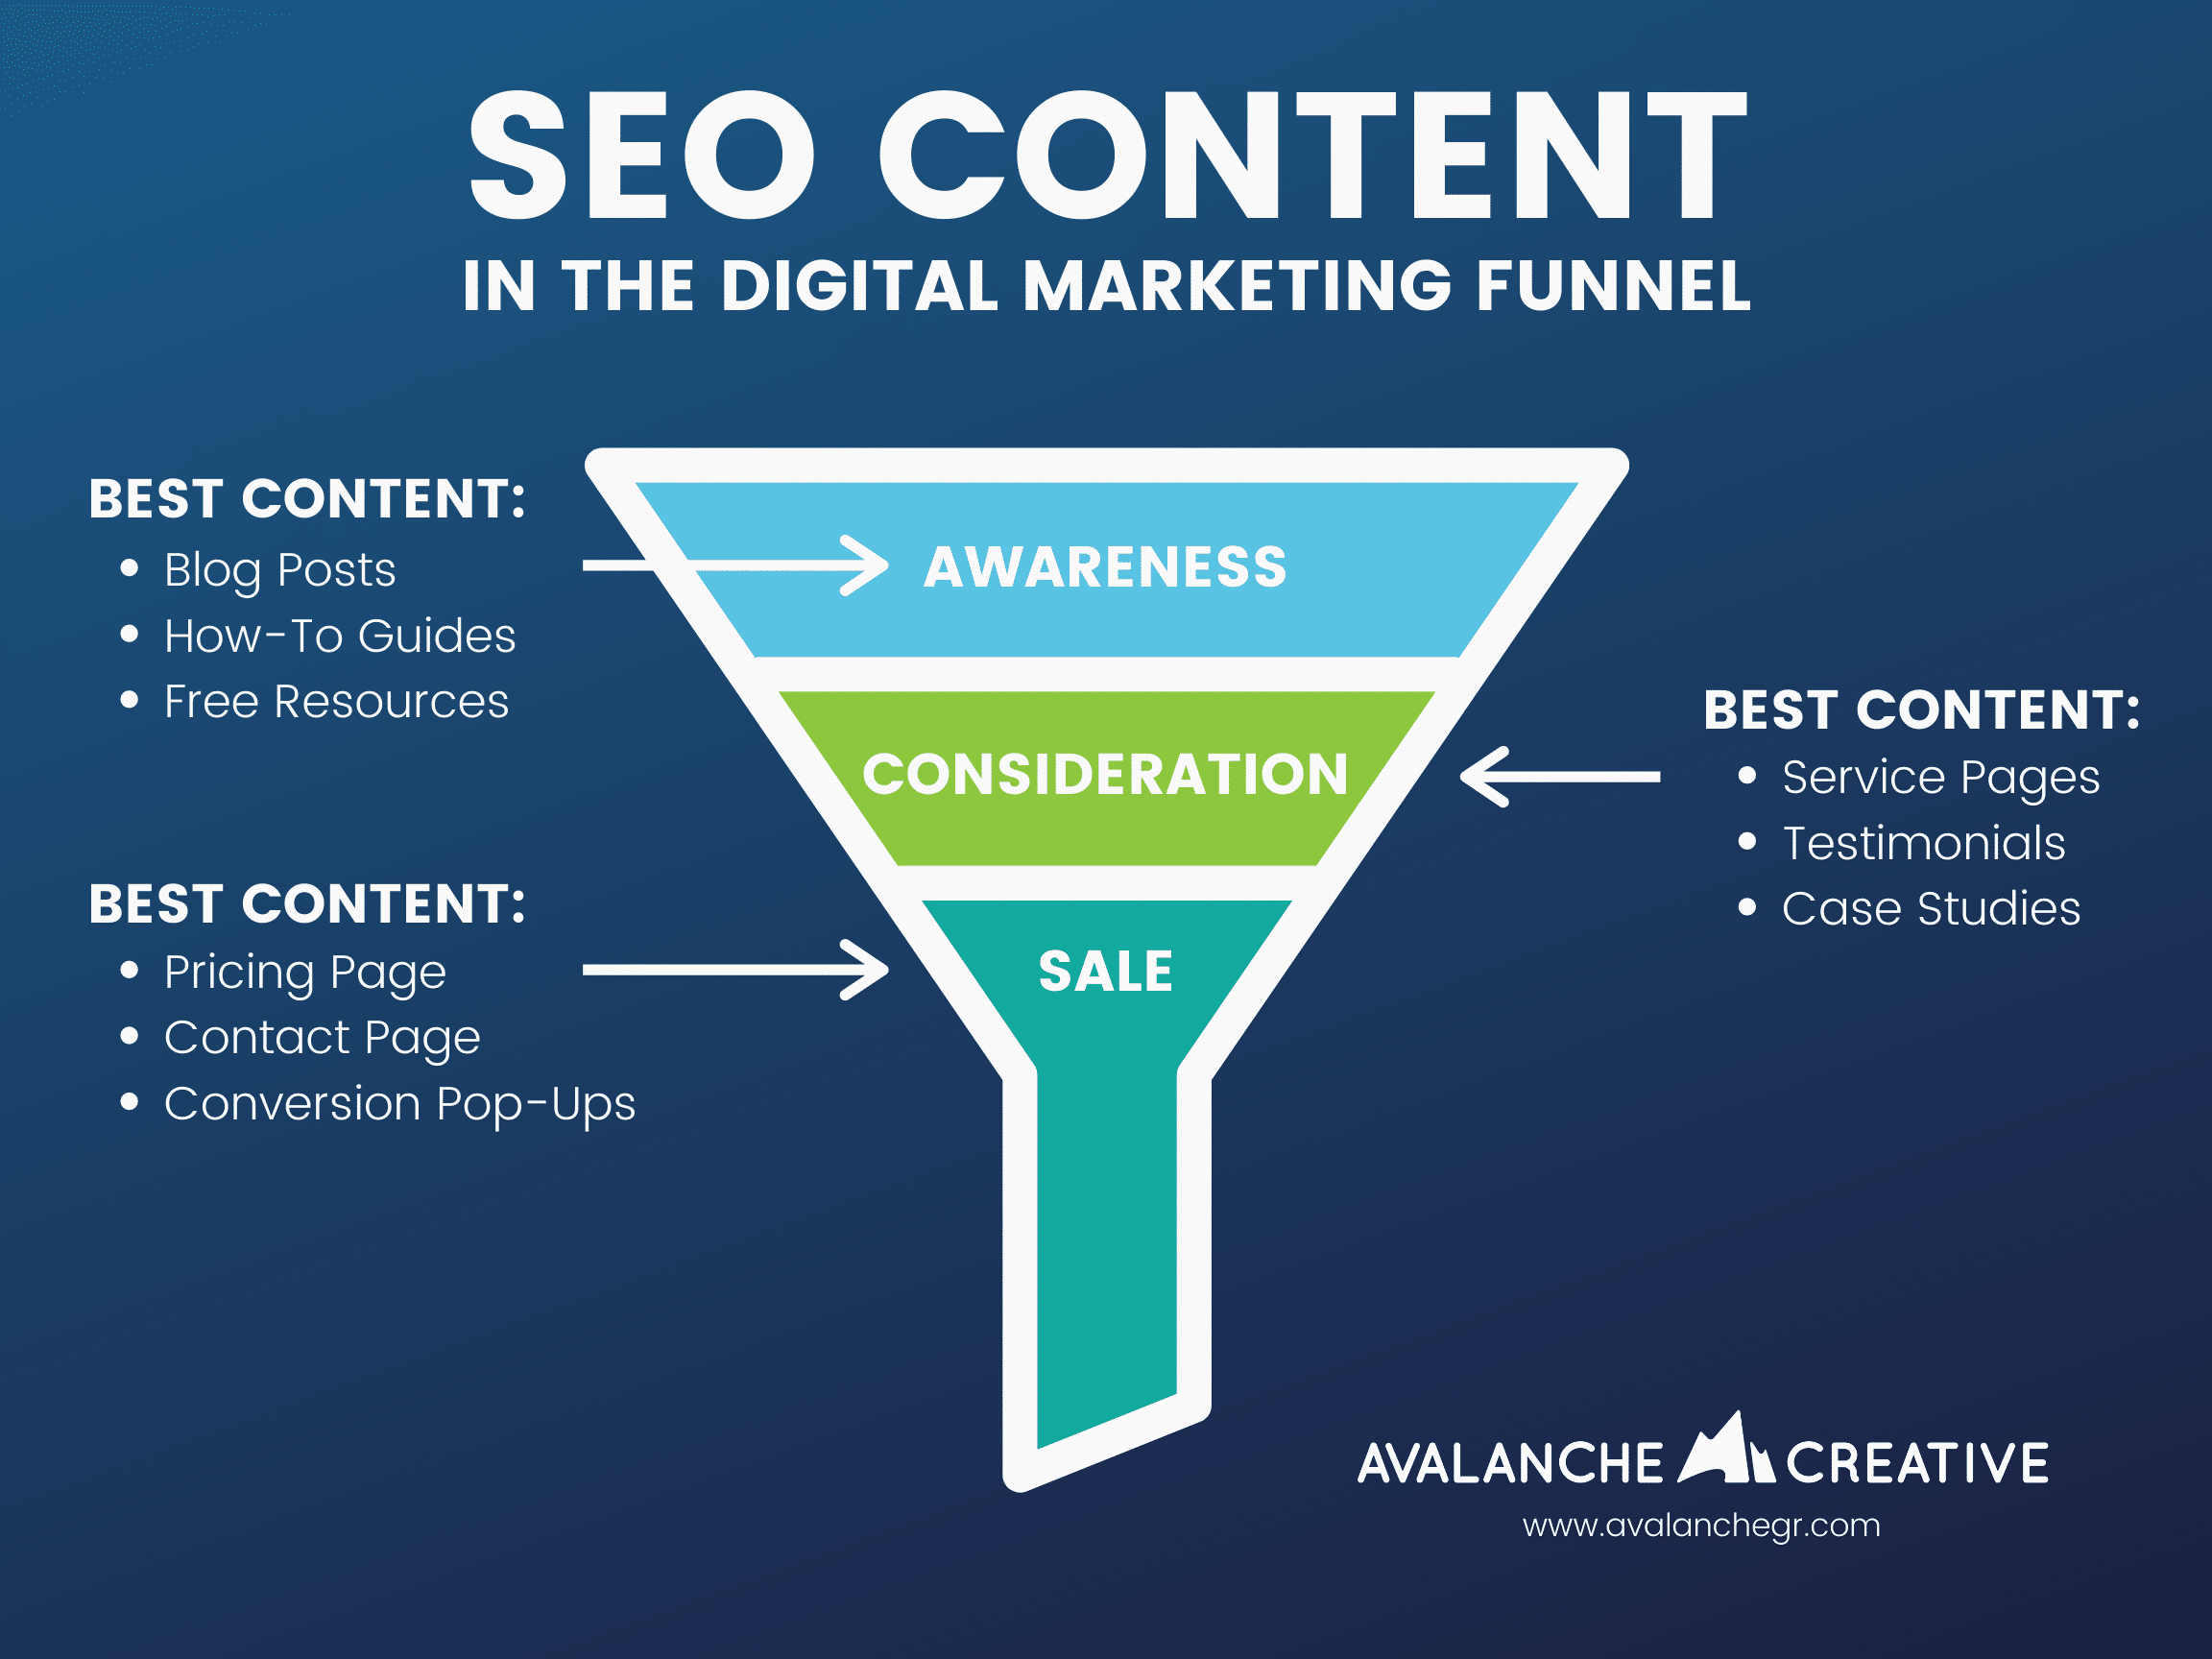 Infographic about SEO Content in the Marketing Funnel